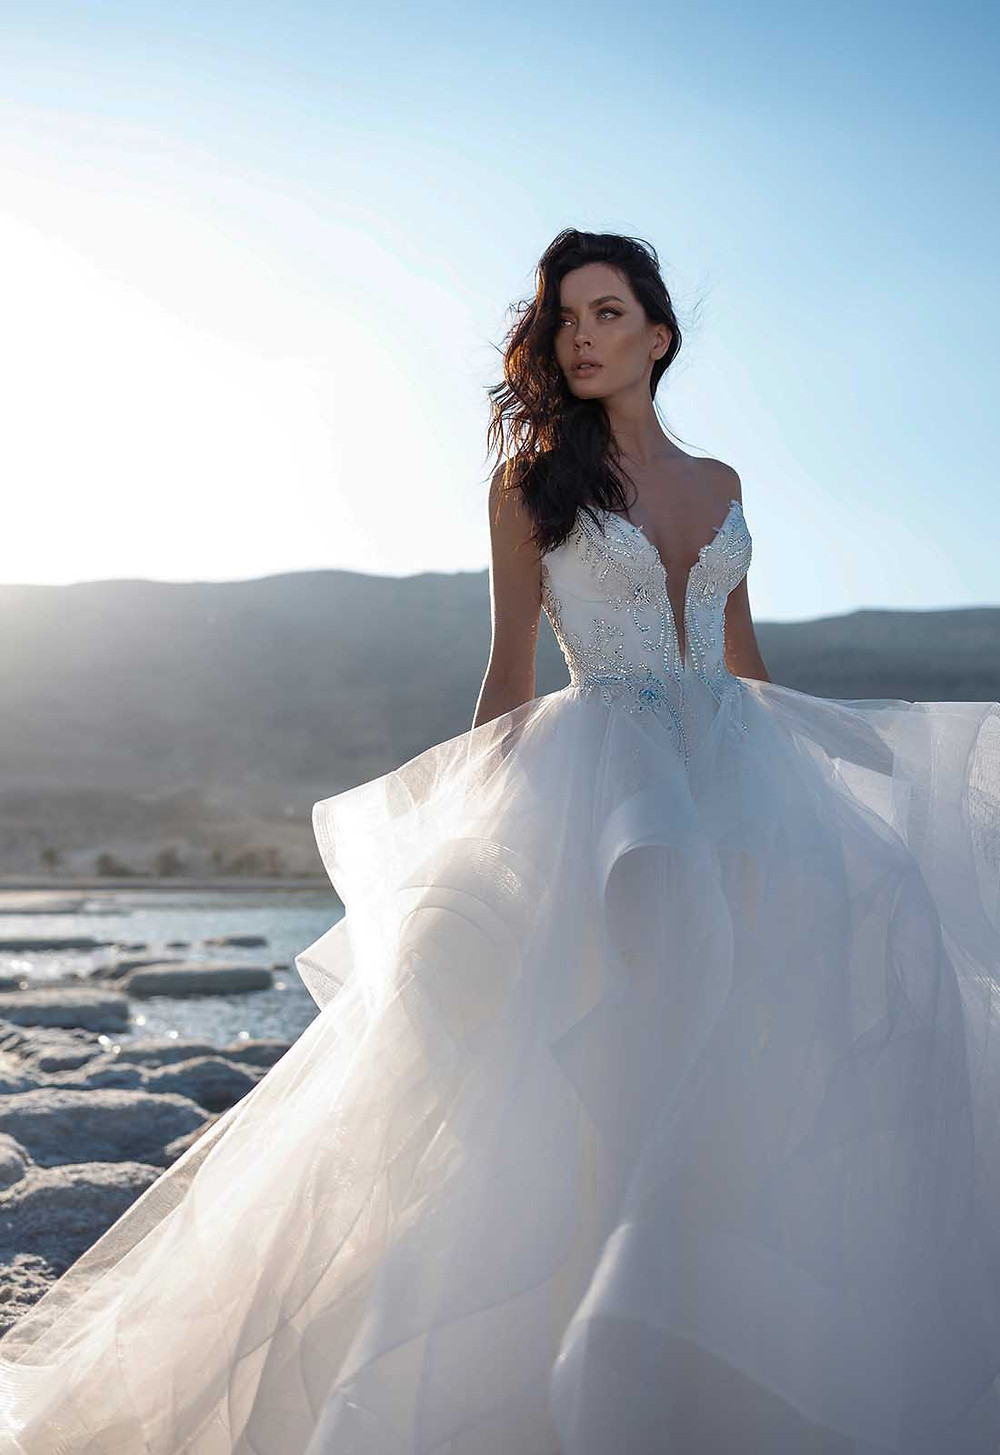 A Pnina Tornai strapless ball gown wedding dress with a layered tulle skirt, sweetheart neckline and crystals